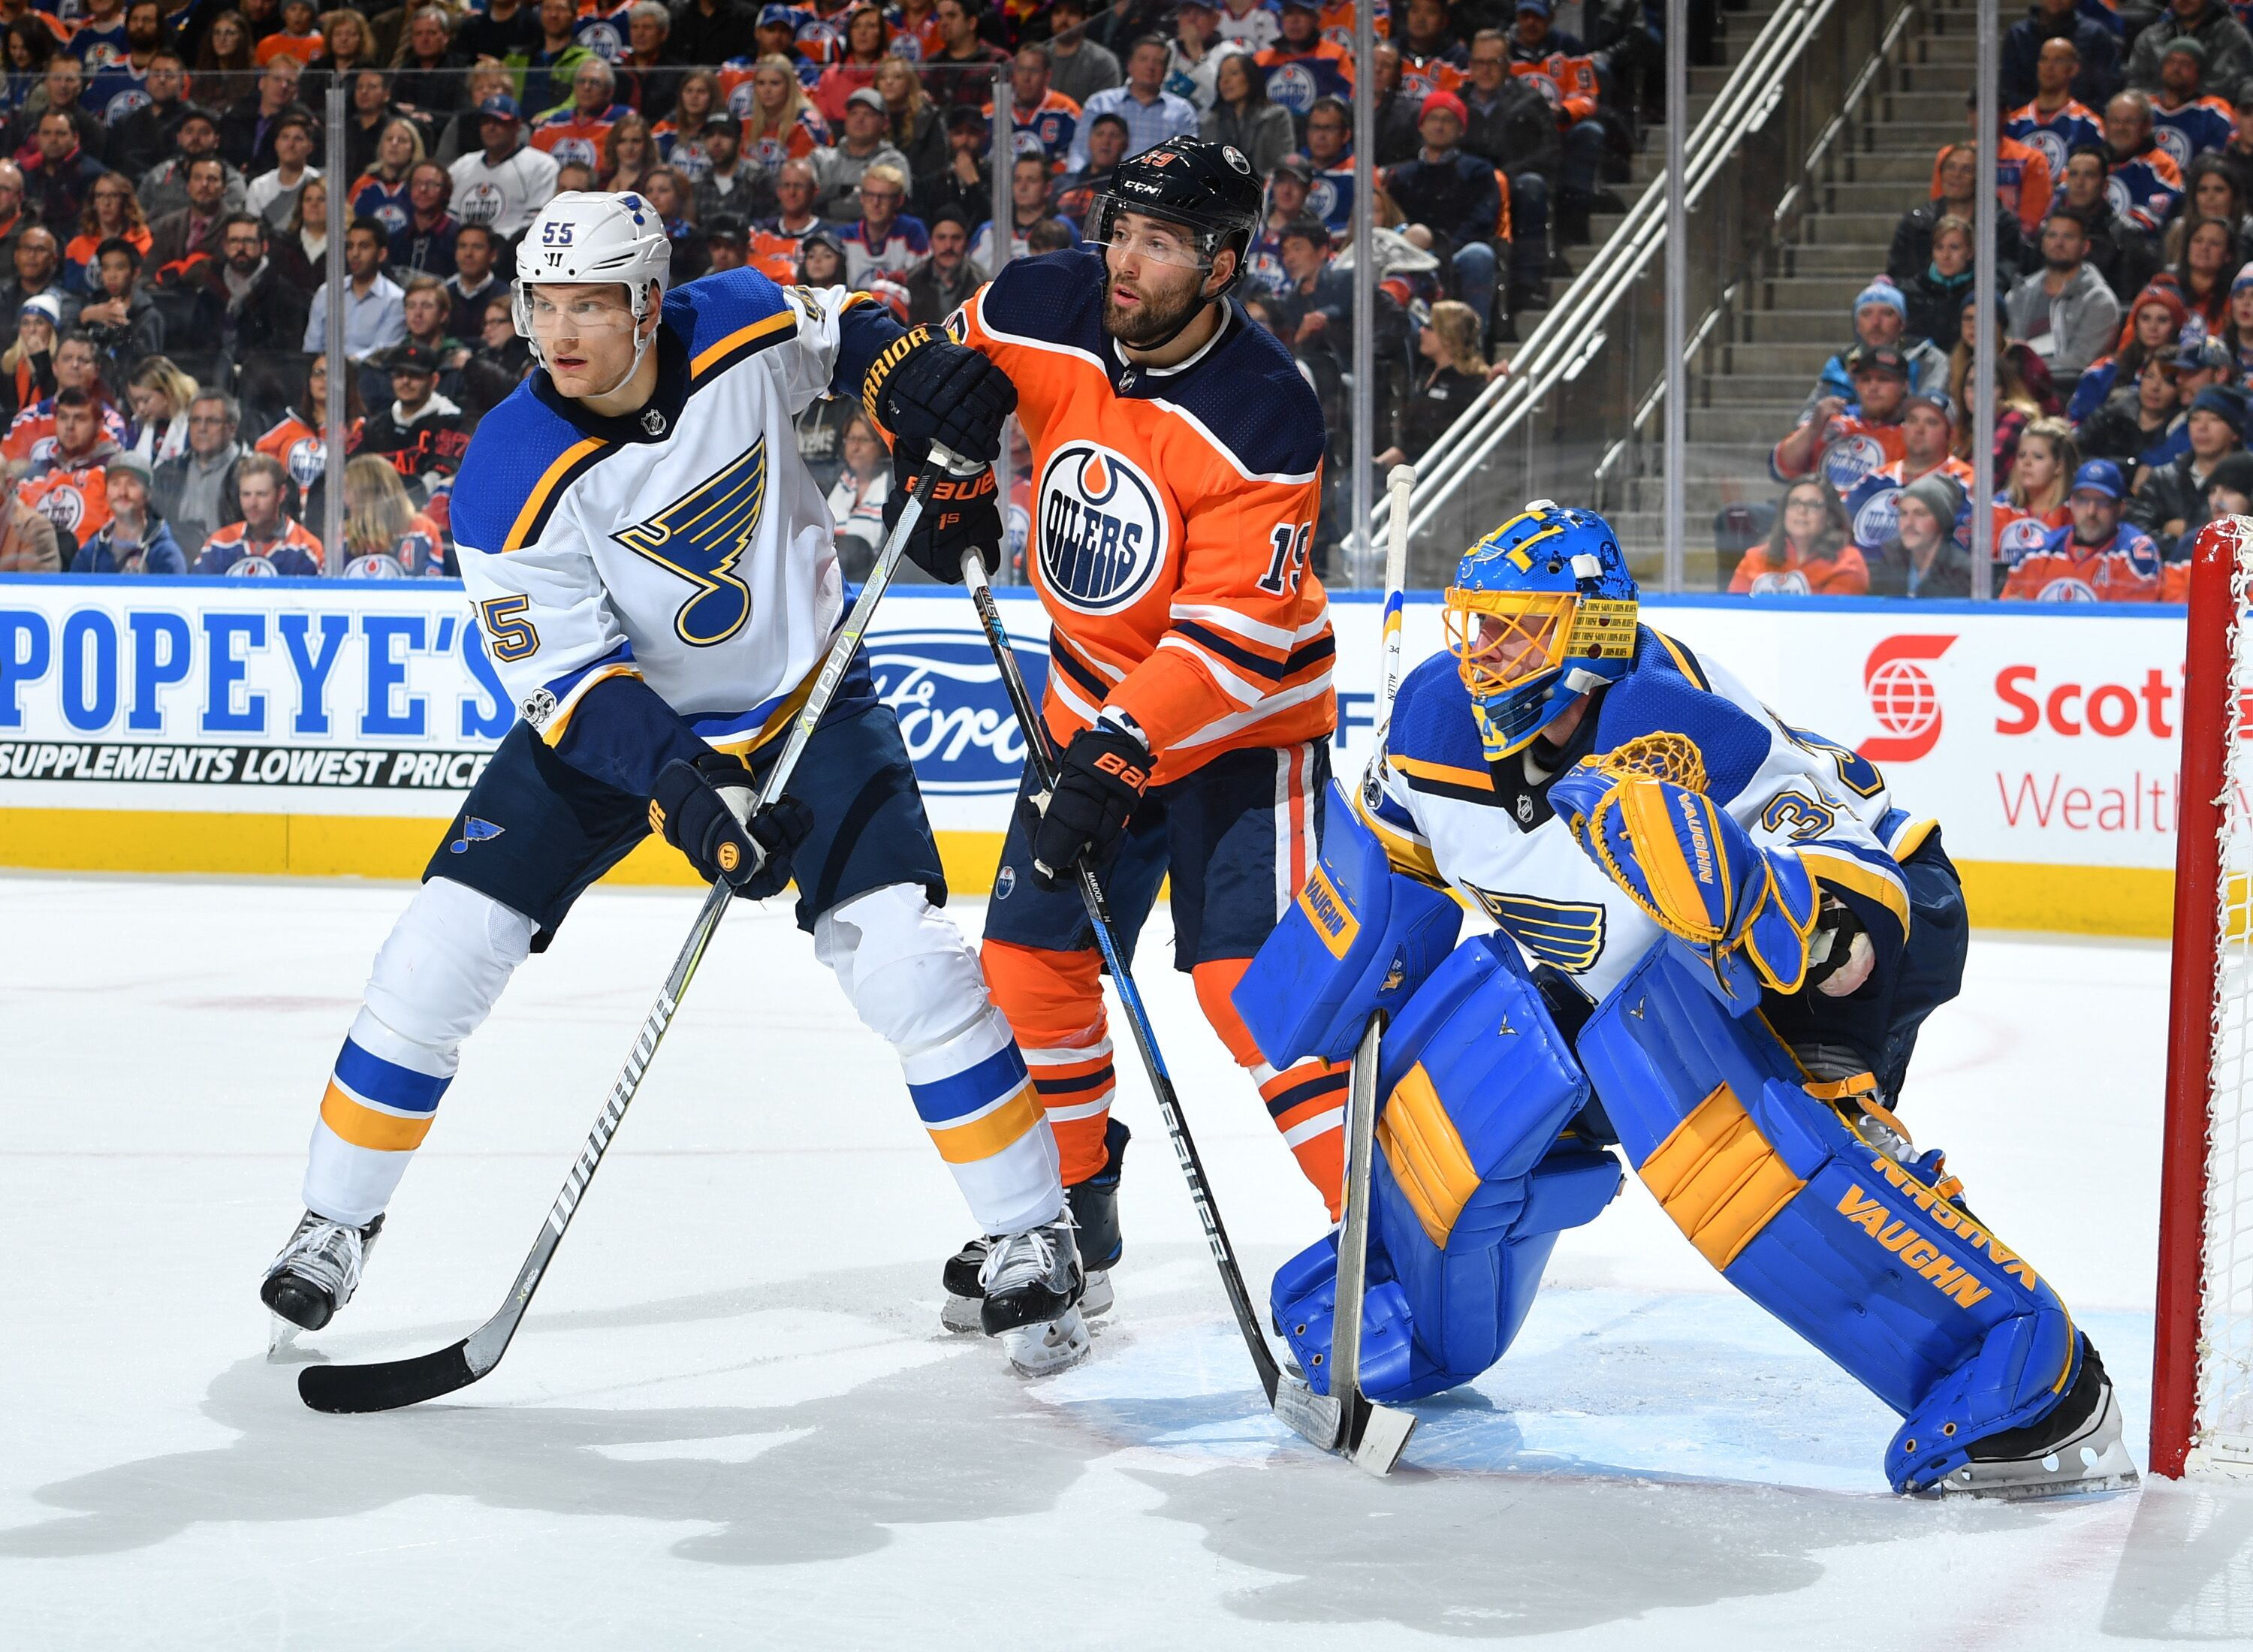 St. Louis Blues Rumors  Patrick Maroon To Sign With Blues aac4fa59eb7